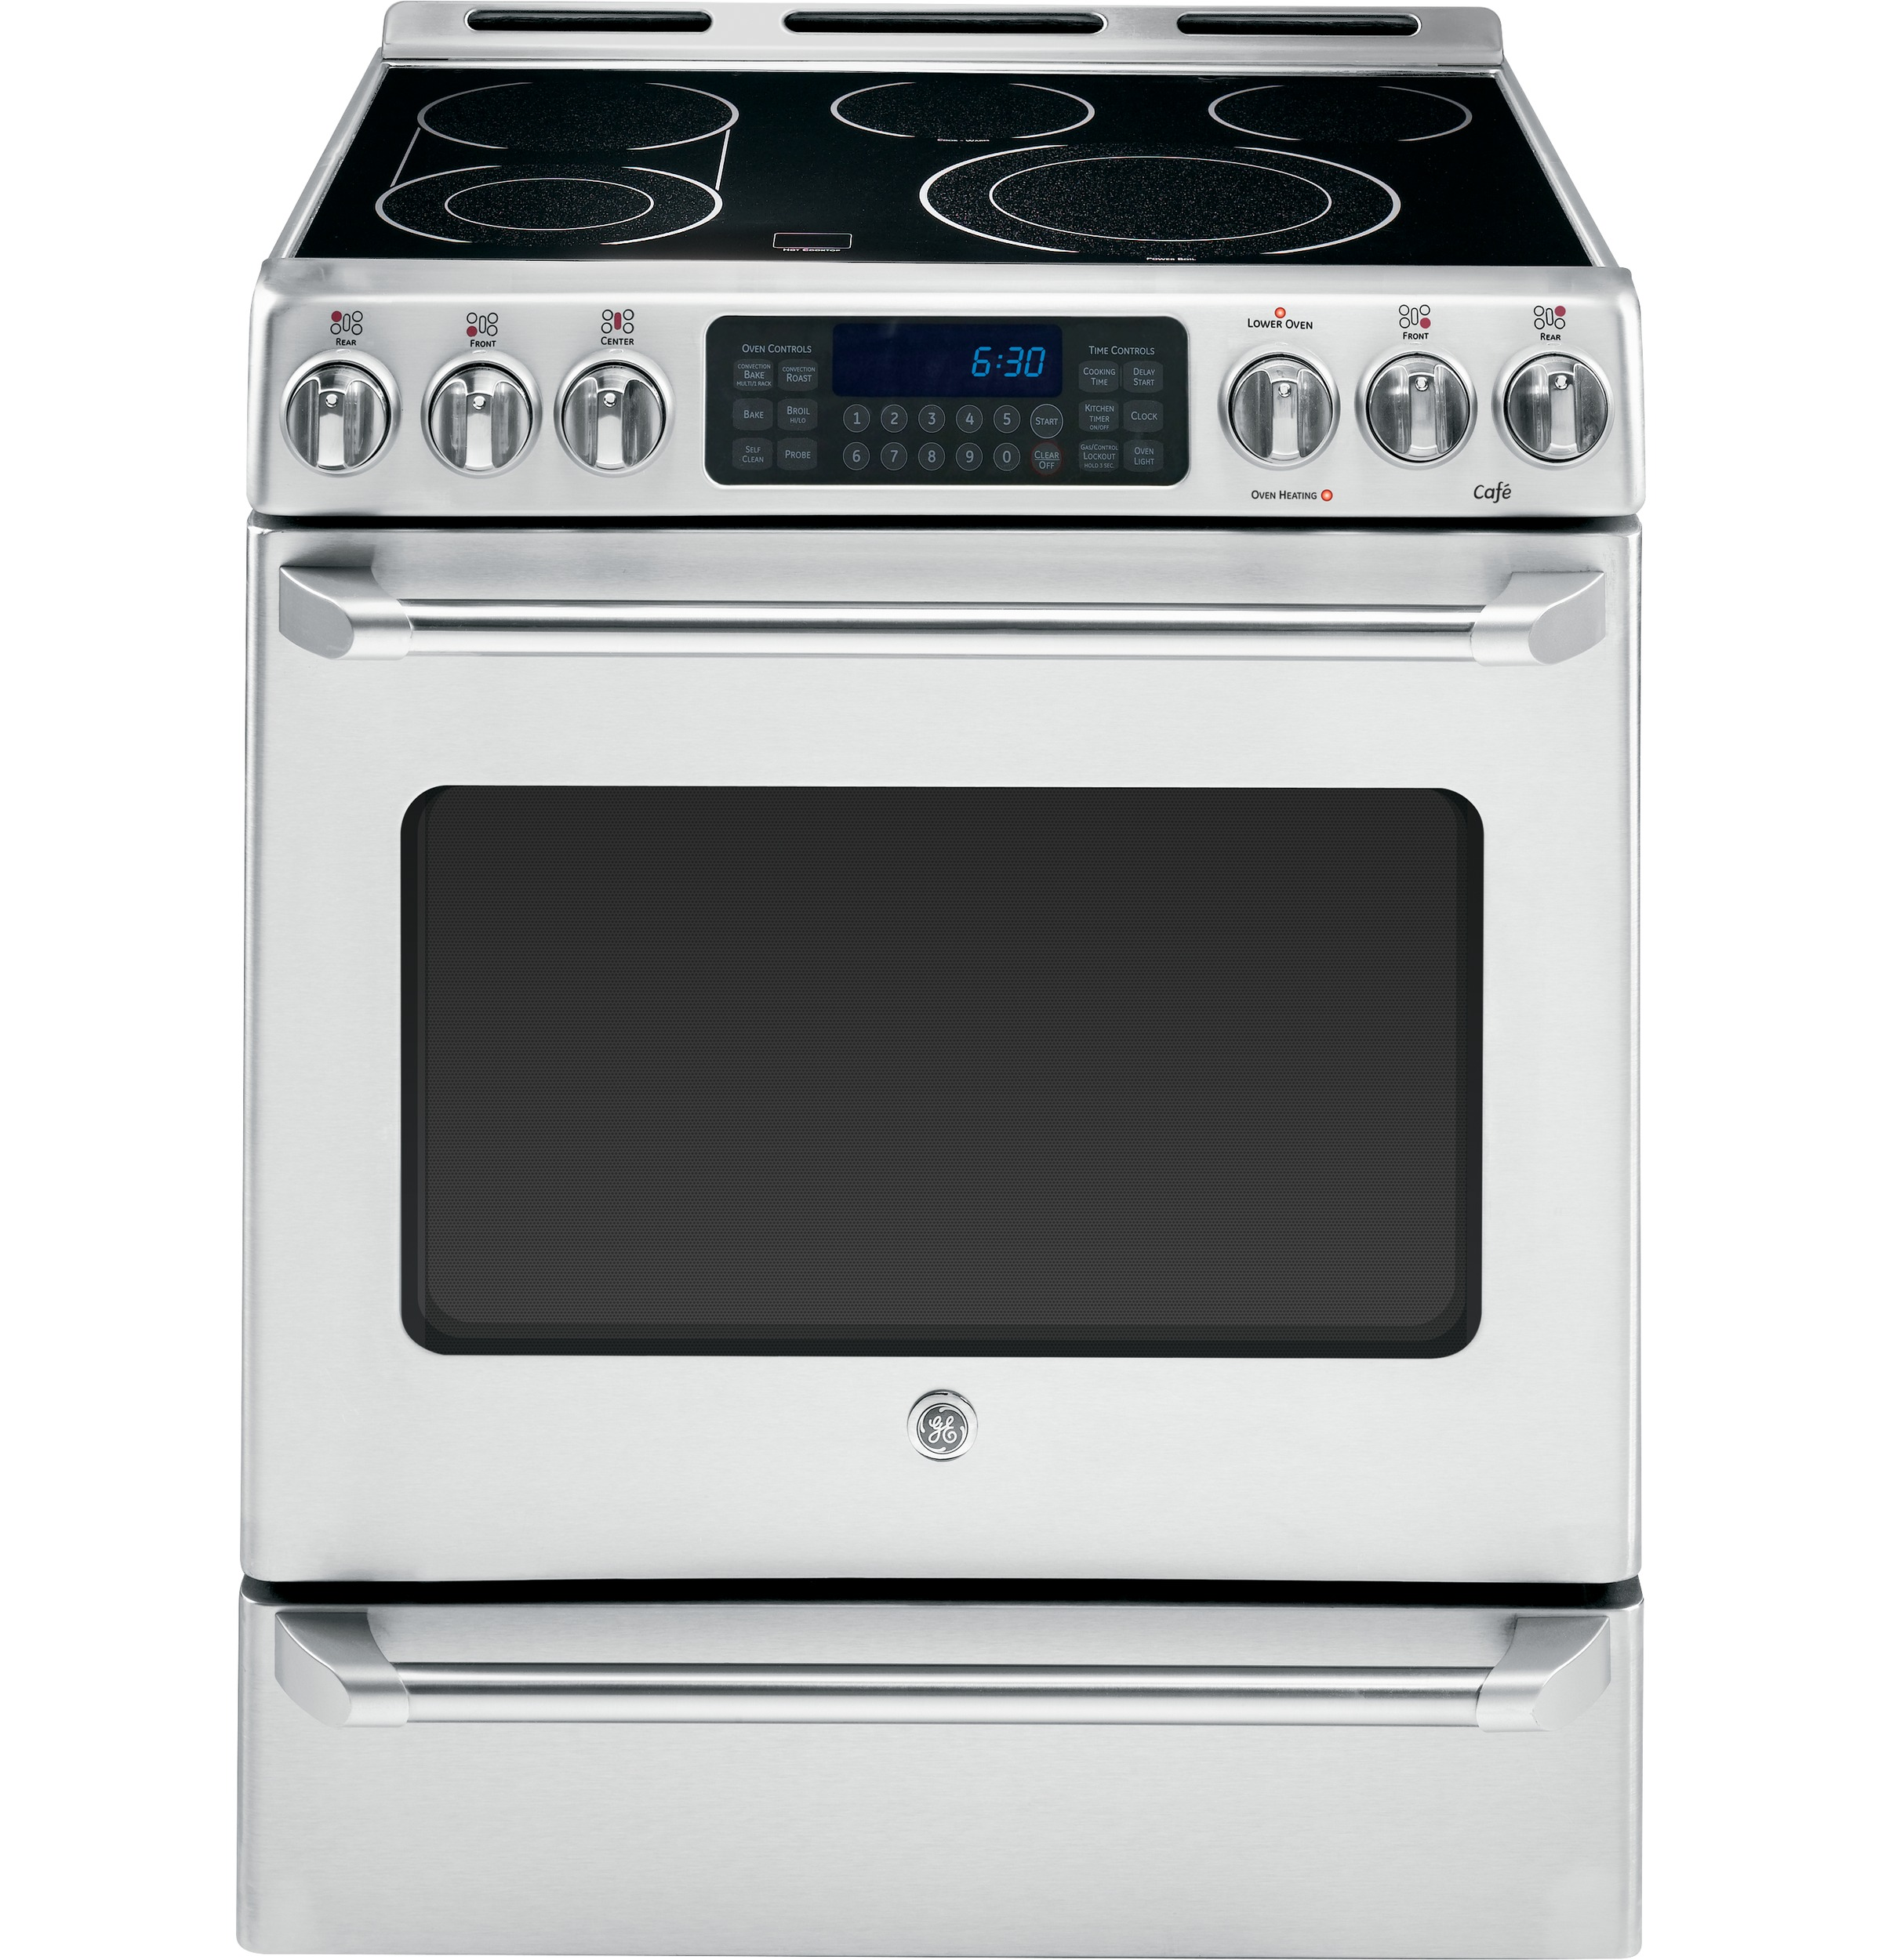 General Electric Cs980stss 30 Inch Slide In Electric Range